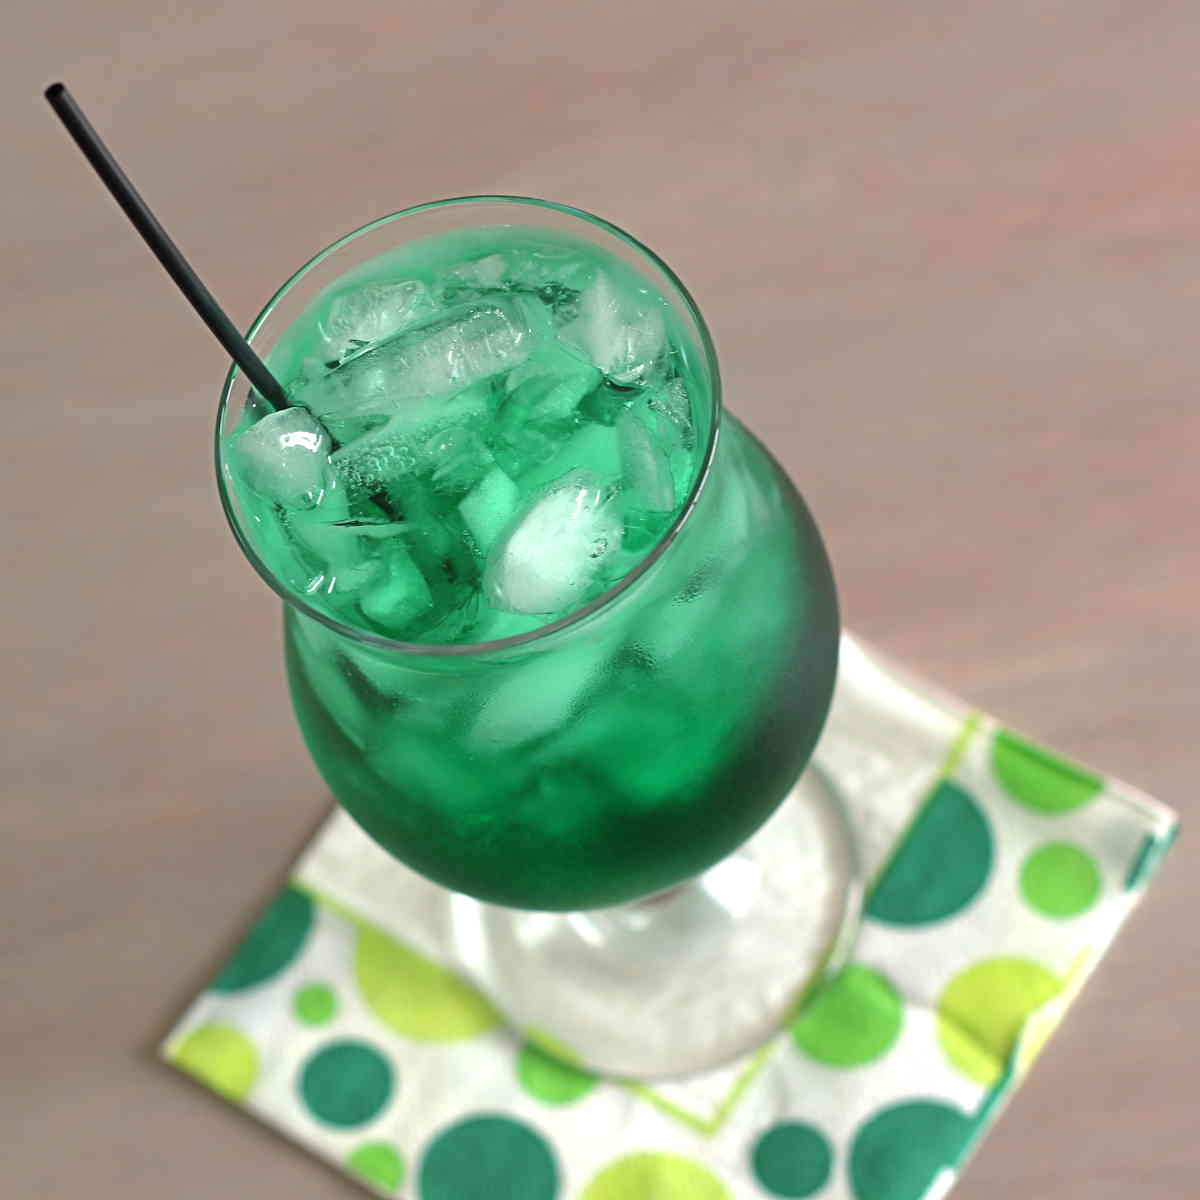 Misty Mint #drink #recipe features just 2 little ingredients, and tastes like mint with hints of caramel &amp; molasses.  https:// mixthatdrink.com/misty-mint/  &nbsp;  <br>http://pic.twitter.com/sOj7X3lUBL